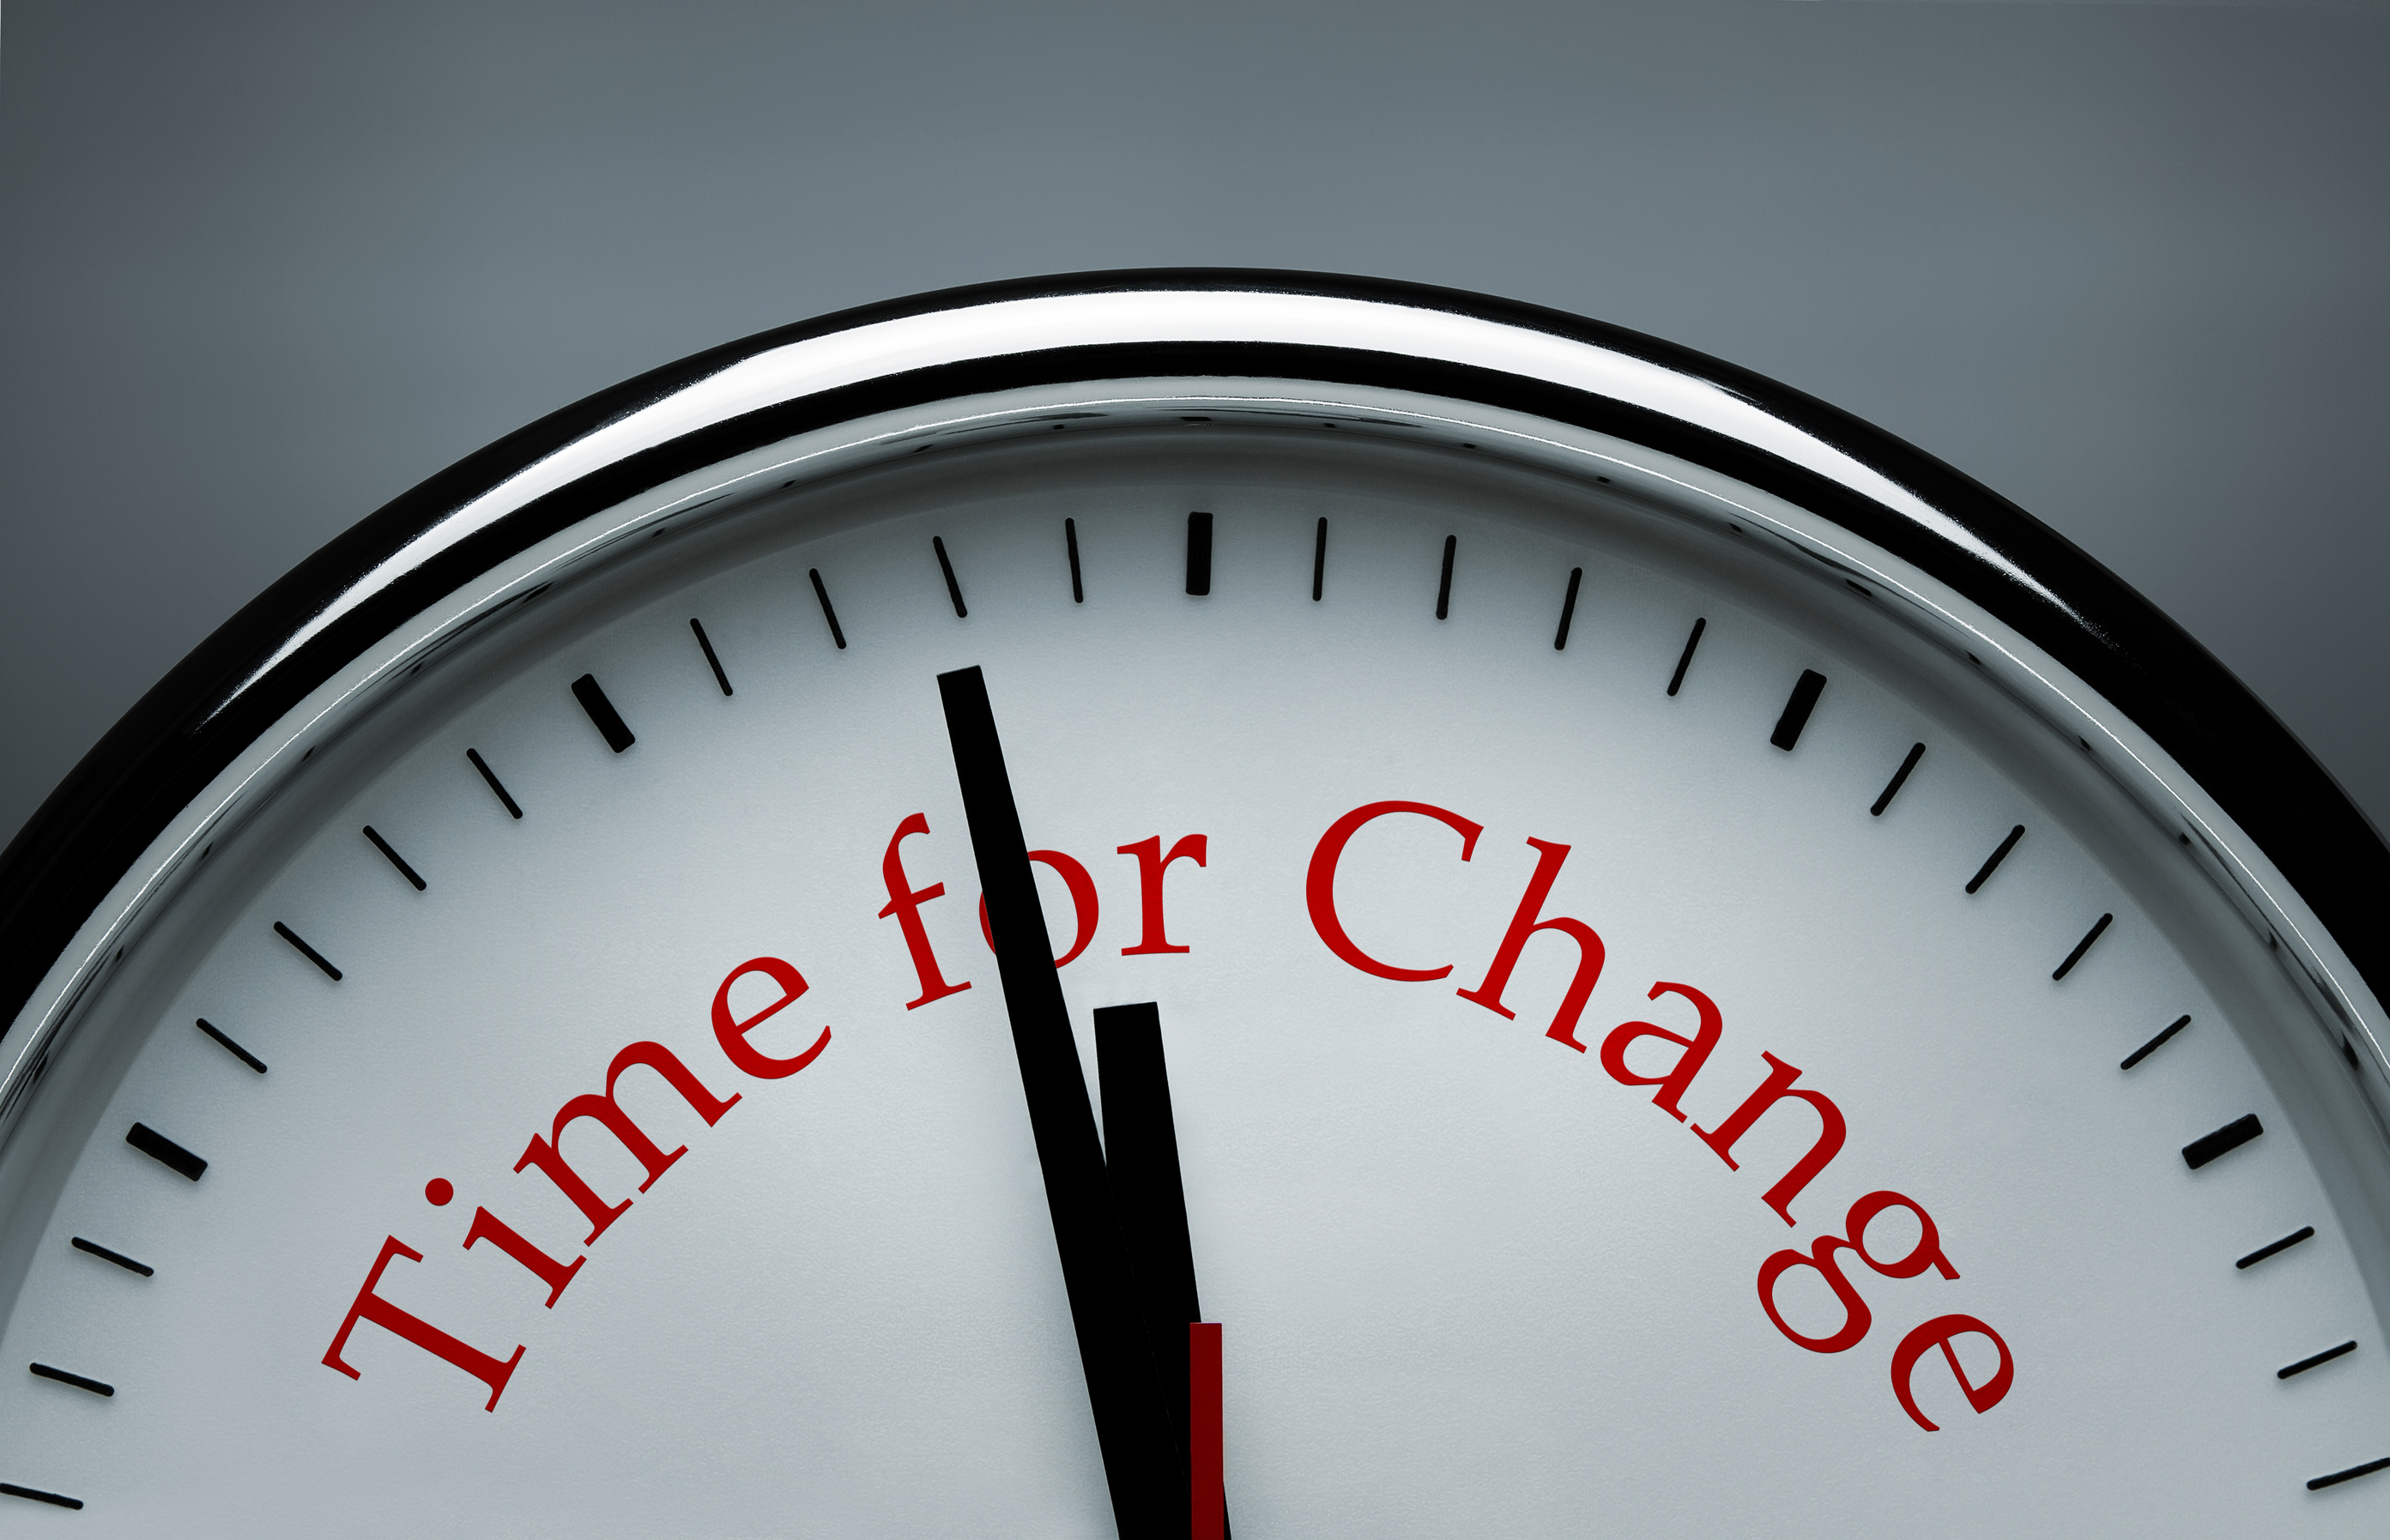 5 Ways to Change Your Company in 2012